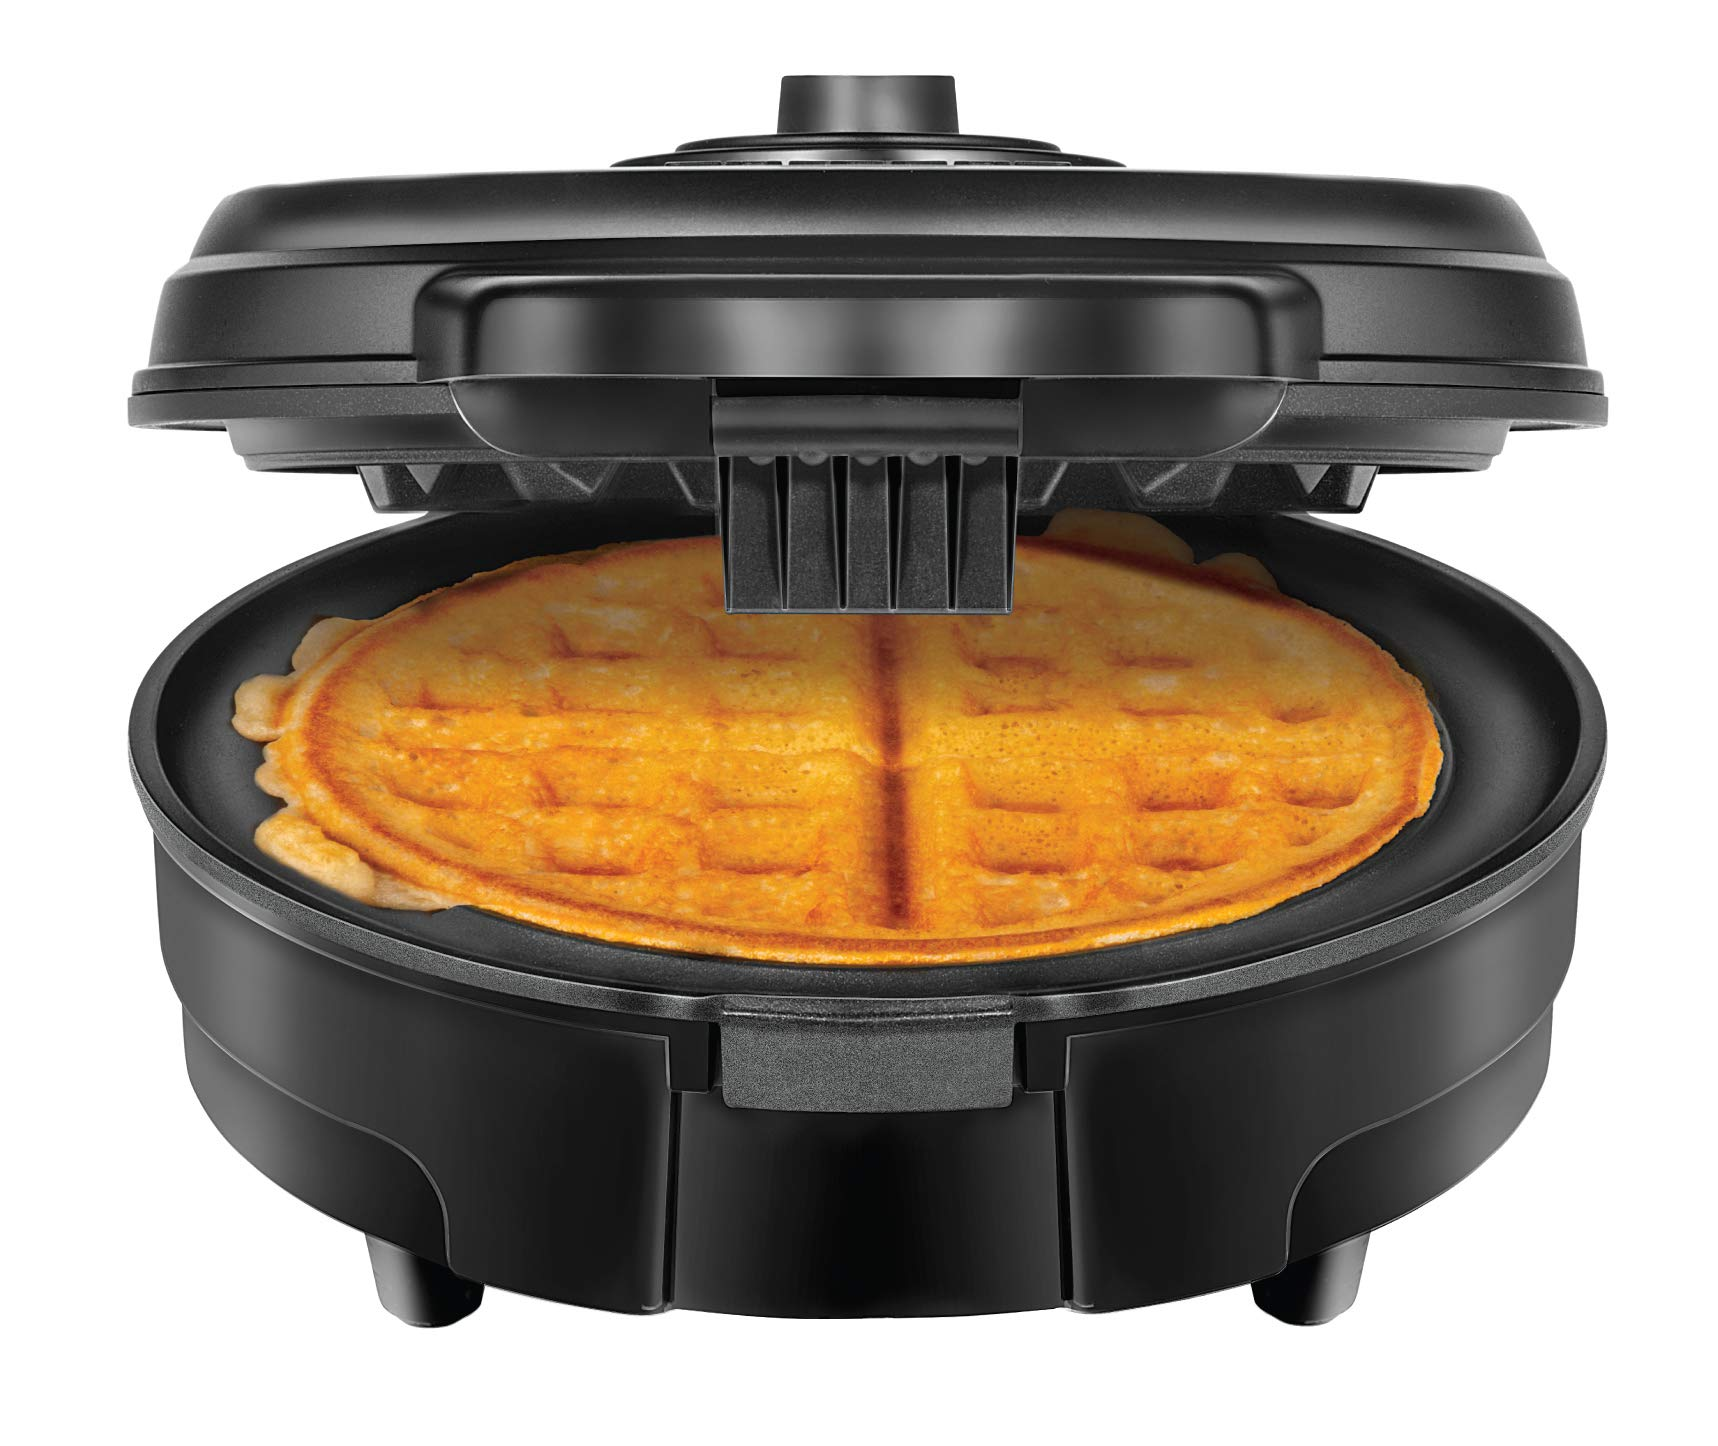 Chefman Anti-Overflow Waffle Maker with Shade Selector, Round Belgian Waffle-Iron, No Mess, Cool Touch Handle, Nonstick Plates, Measuring Cup Included, Black